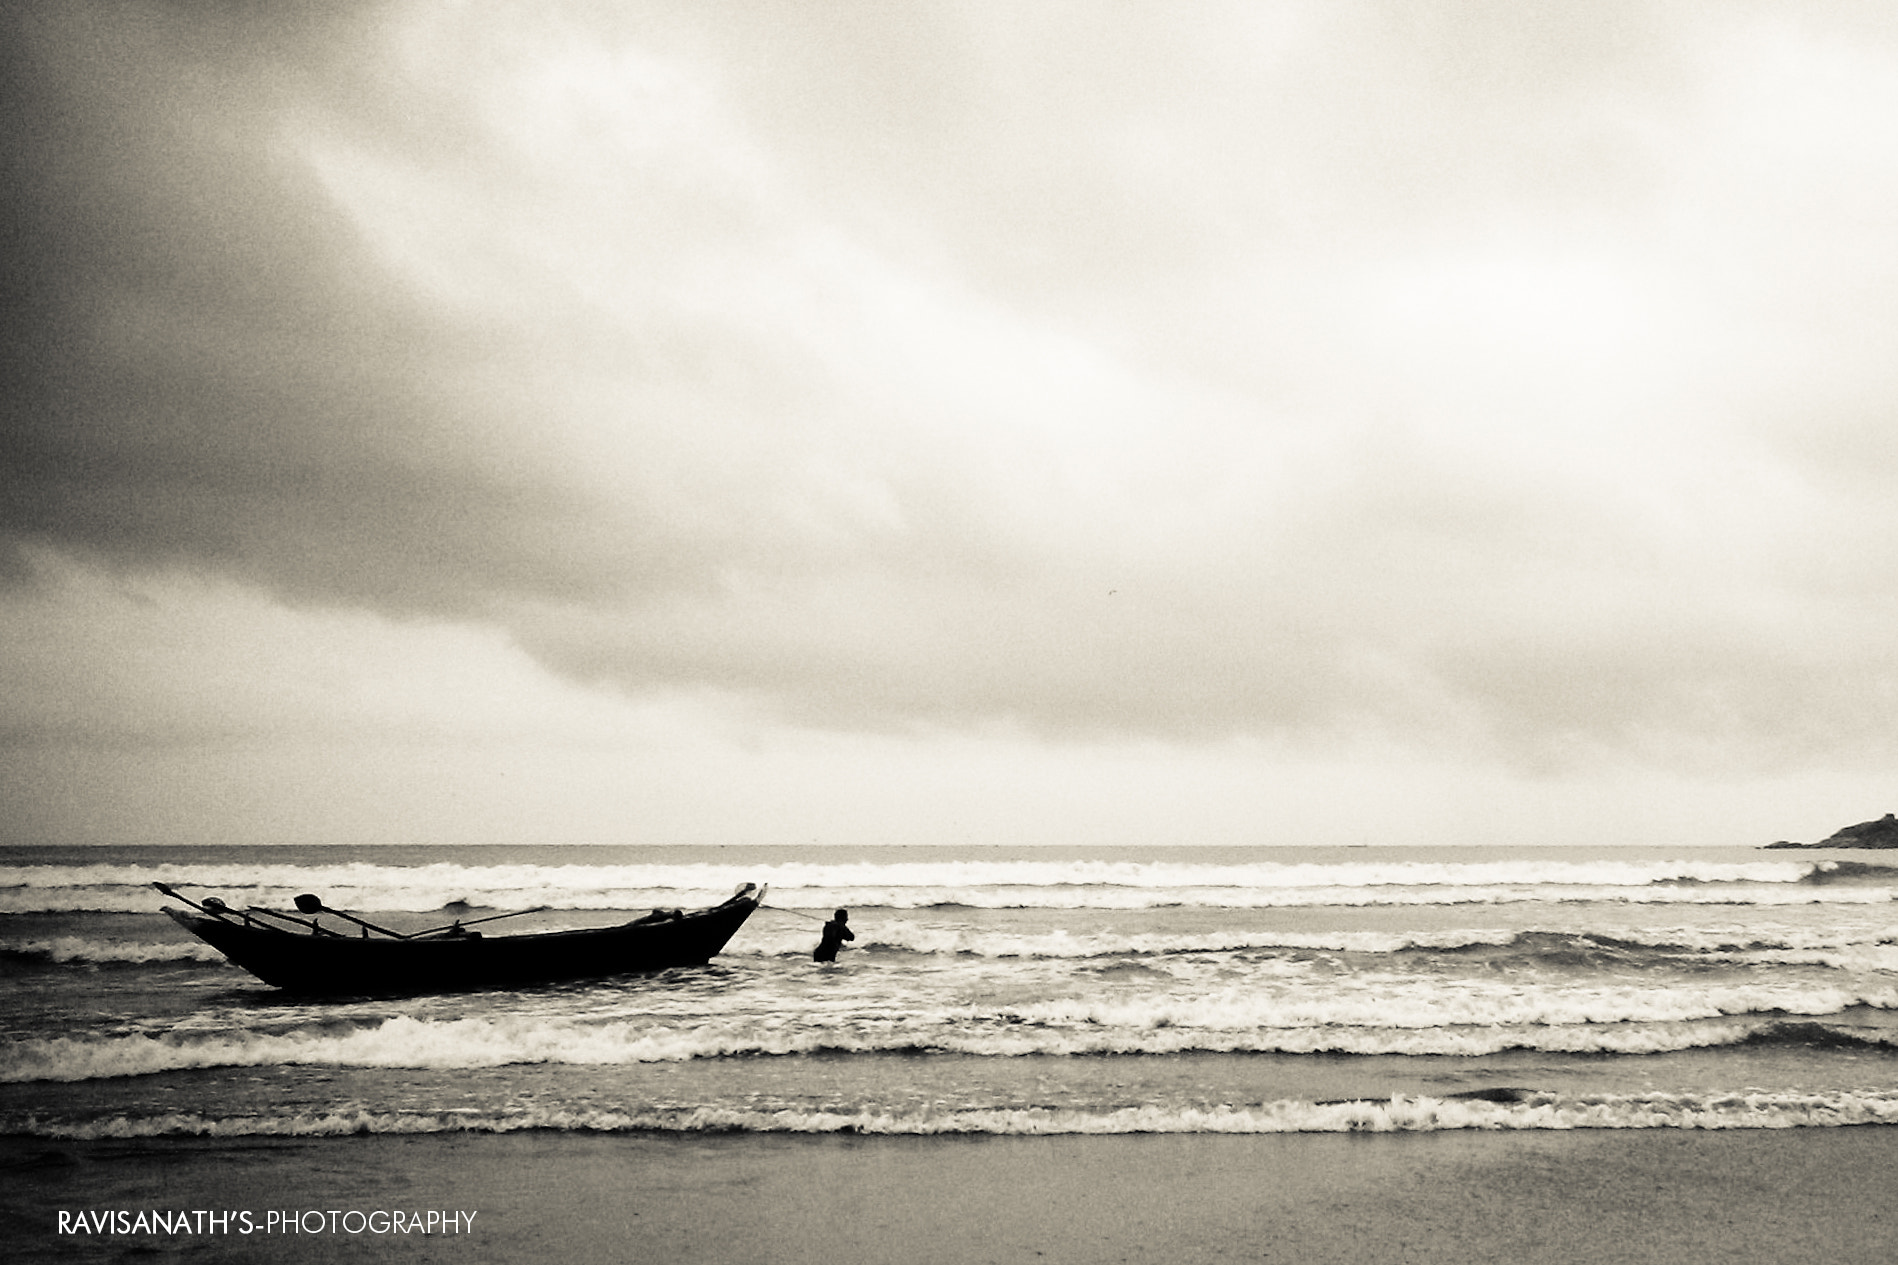 Photograph Silhouette of Boat at Beach by Ravisanath  on 500px